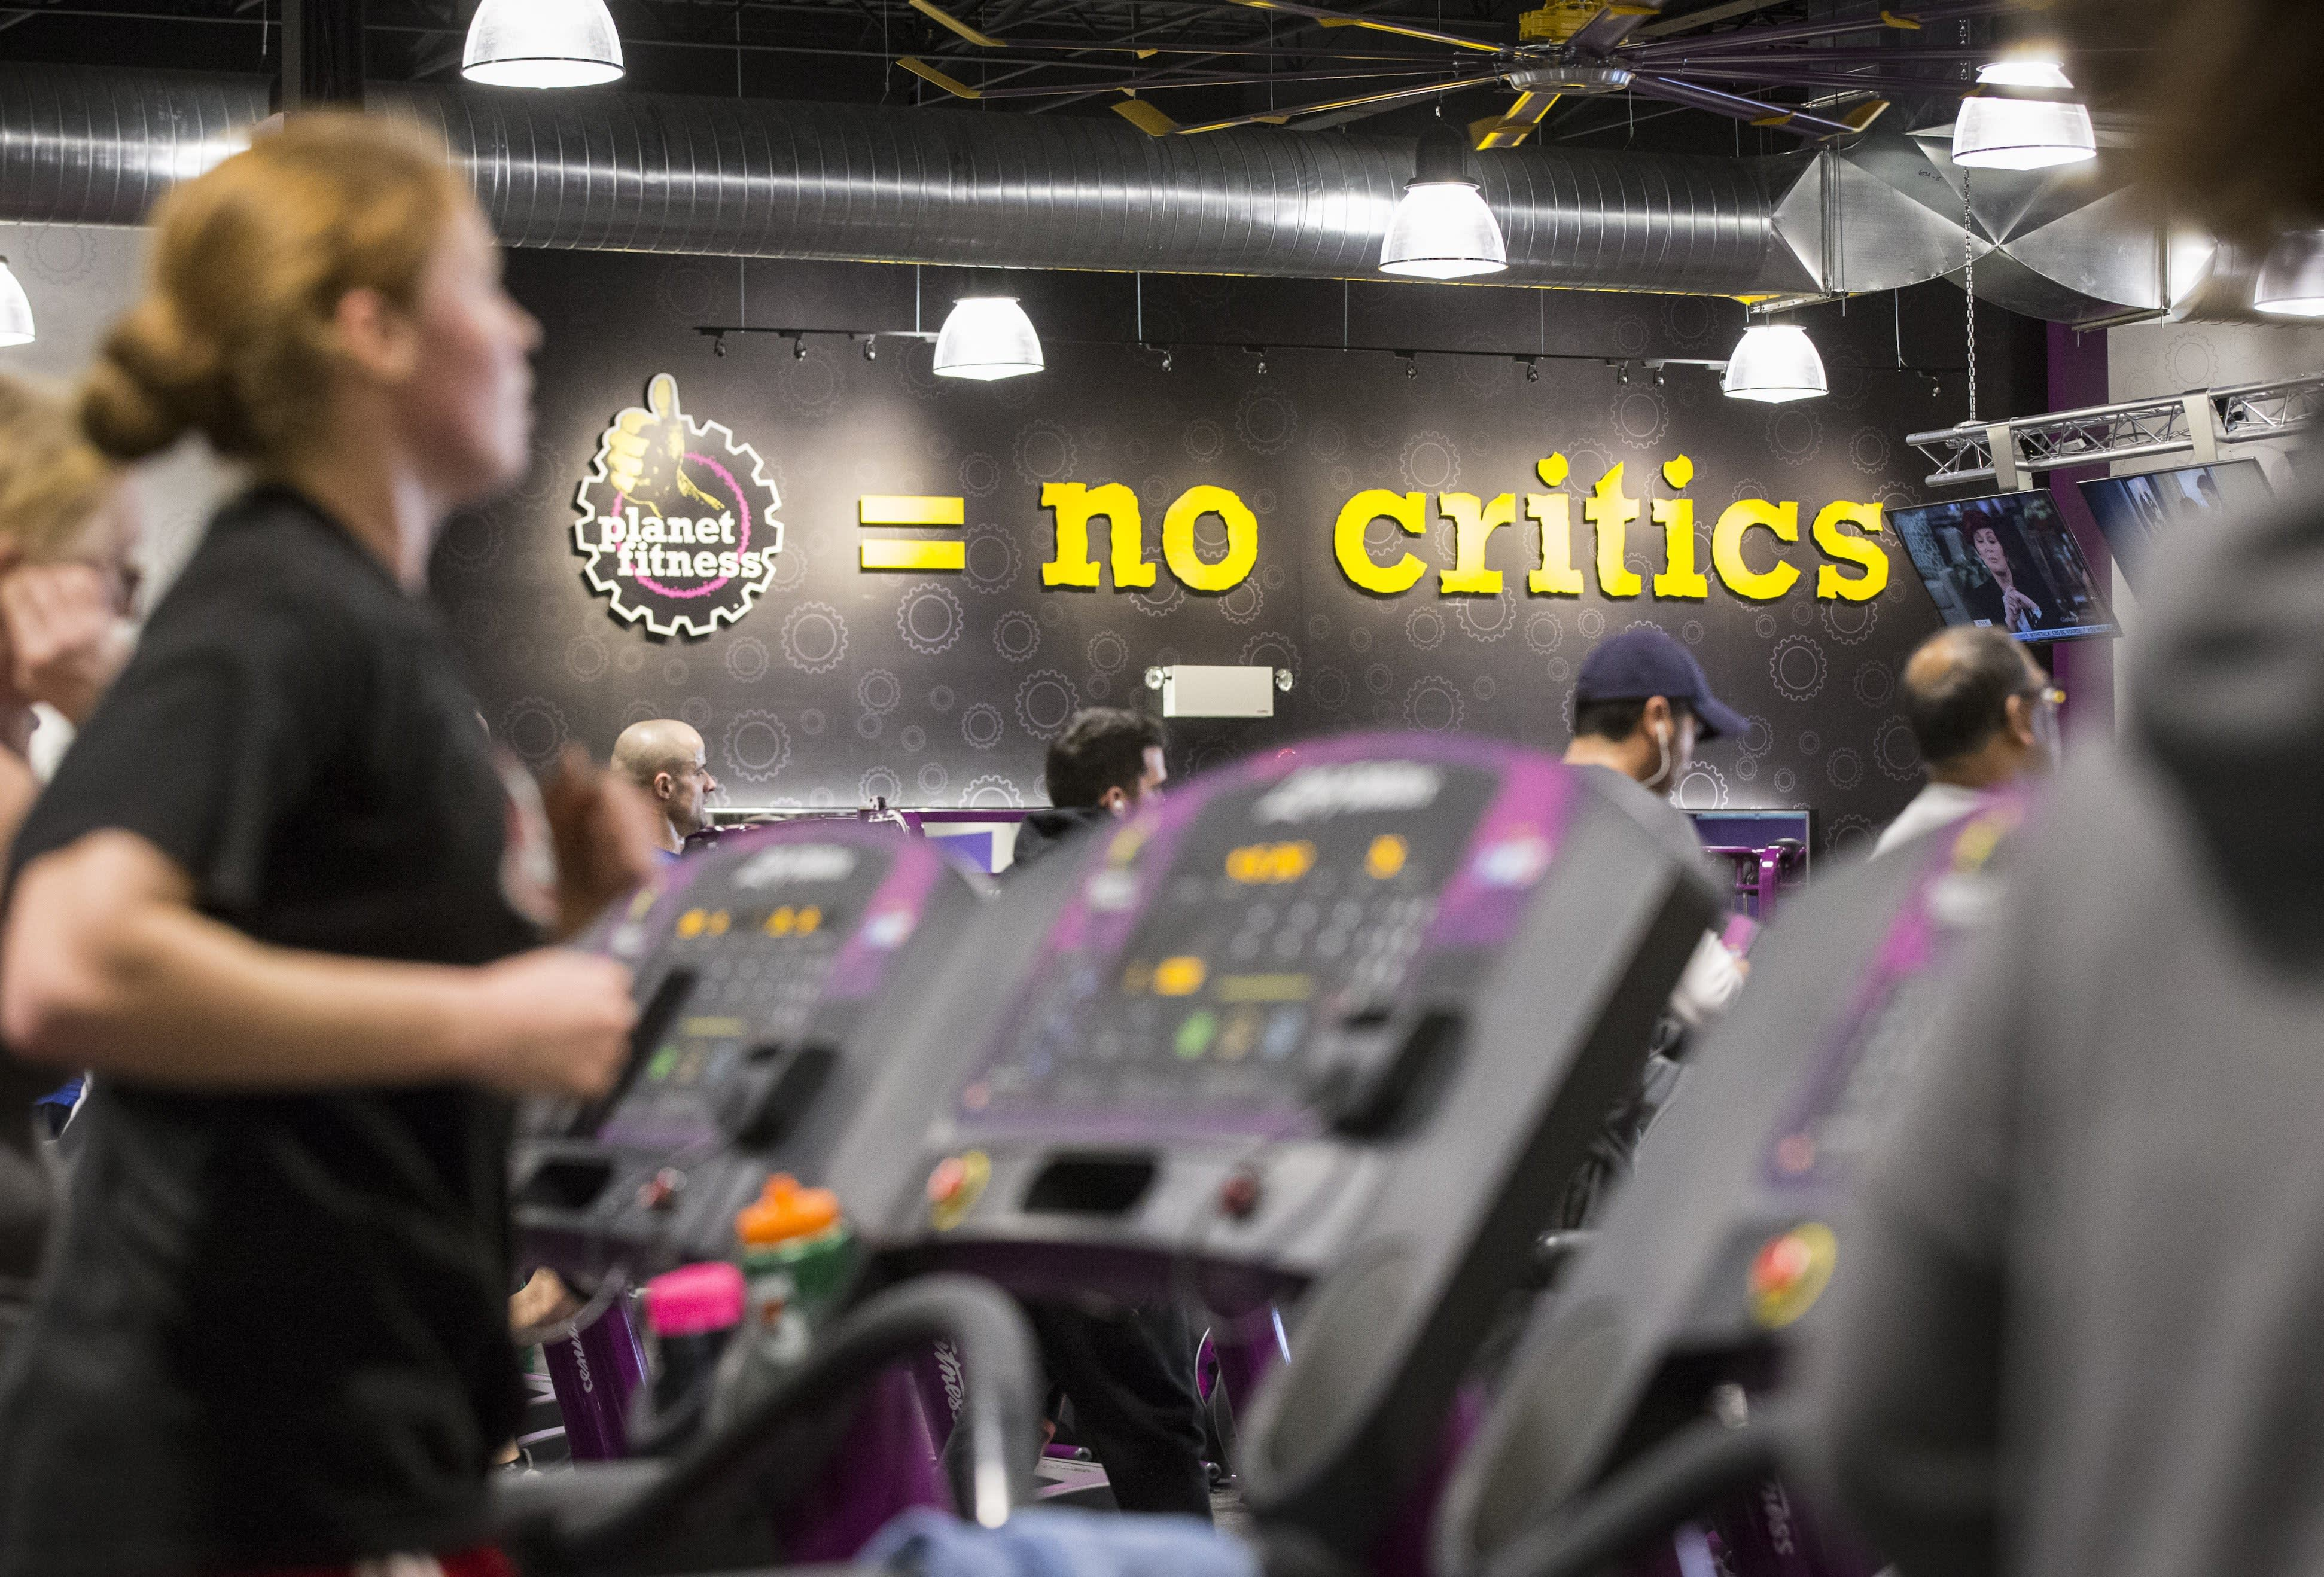 Planet fitness stock near record high real estate gains without planet fitness stock near record high real estate gains without retail pains buycottarizona Choice Image